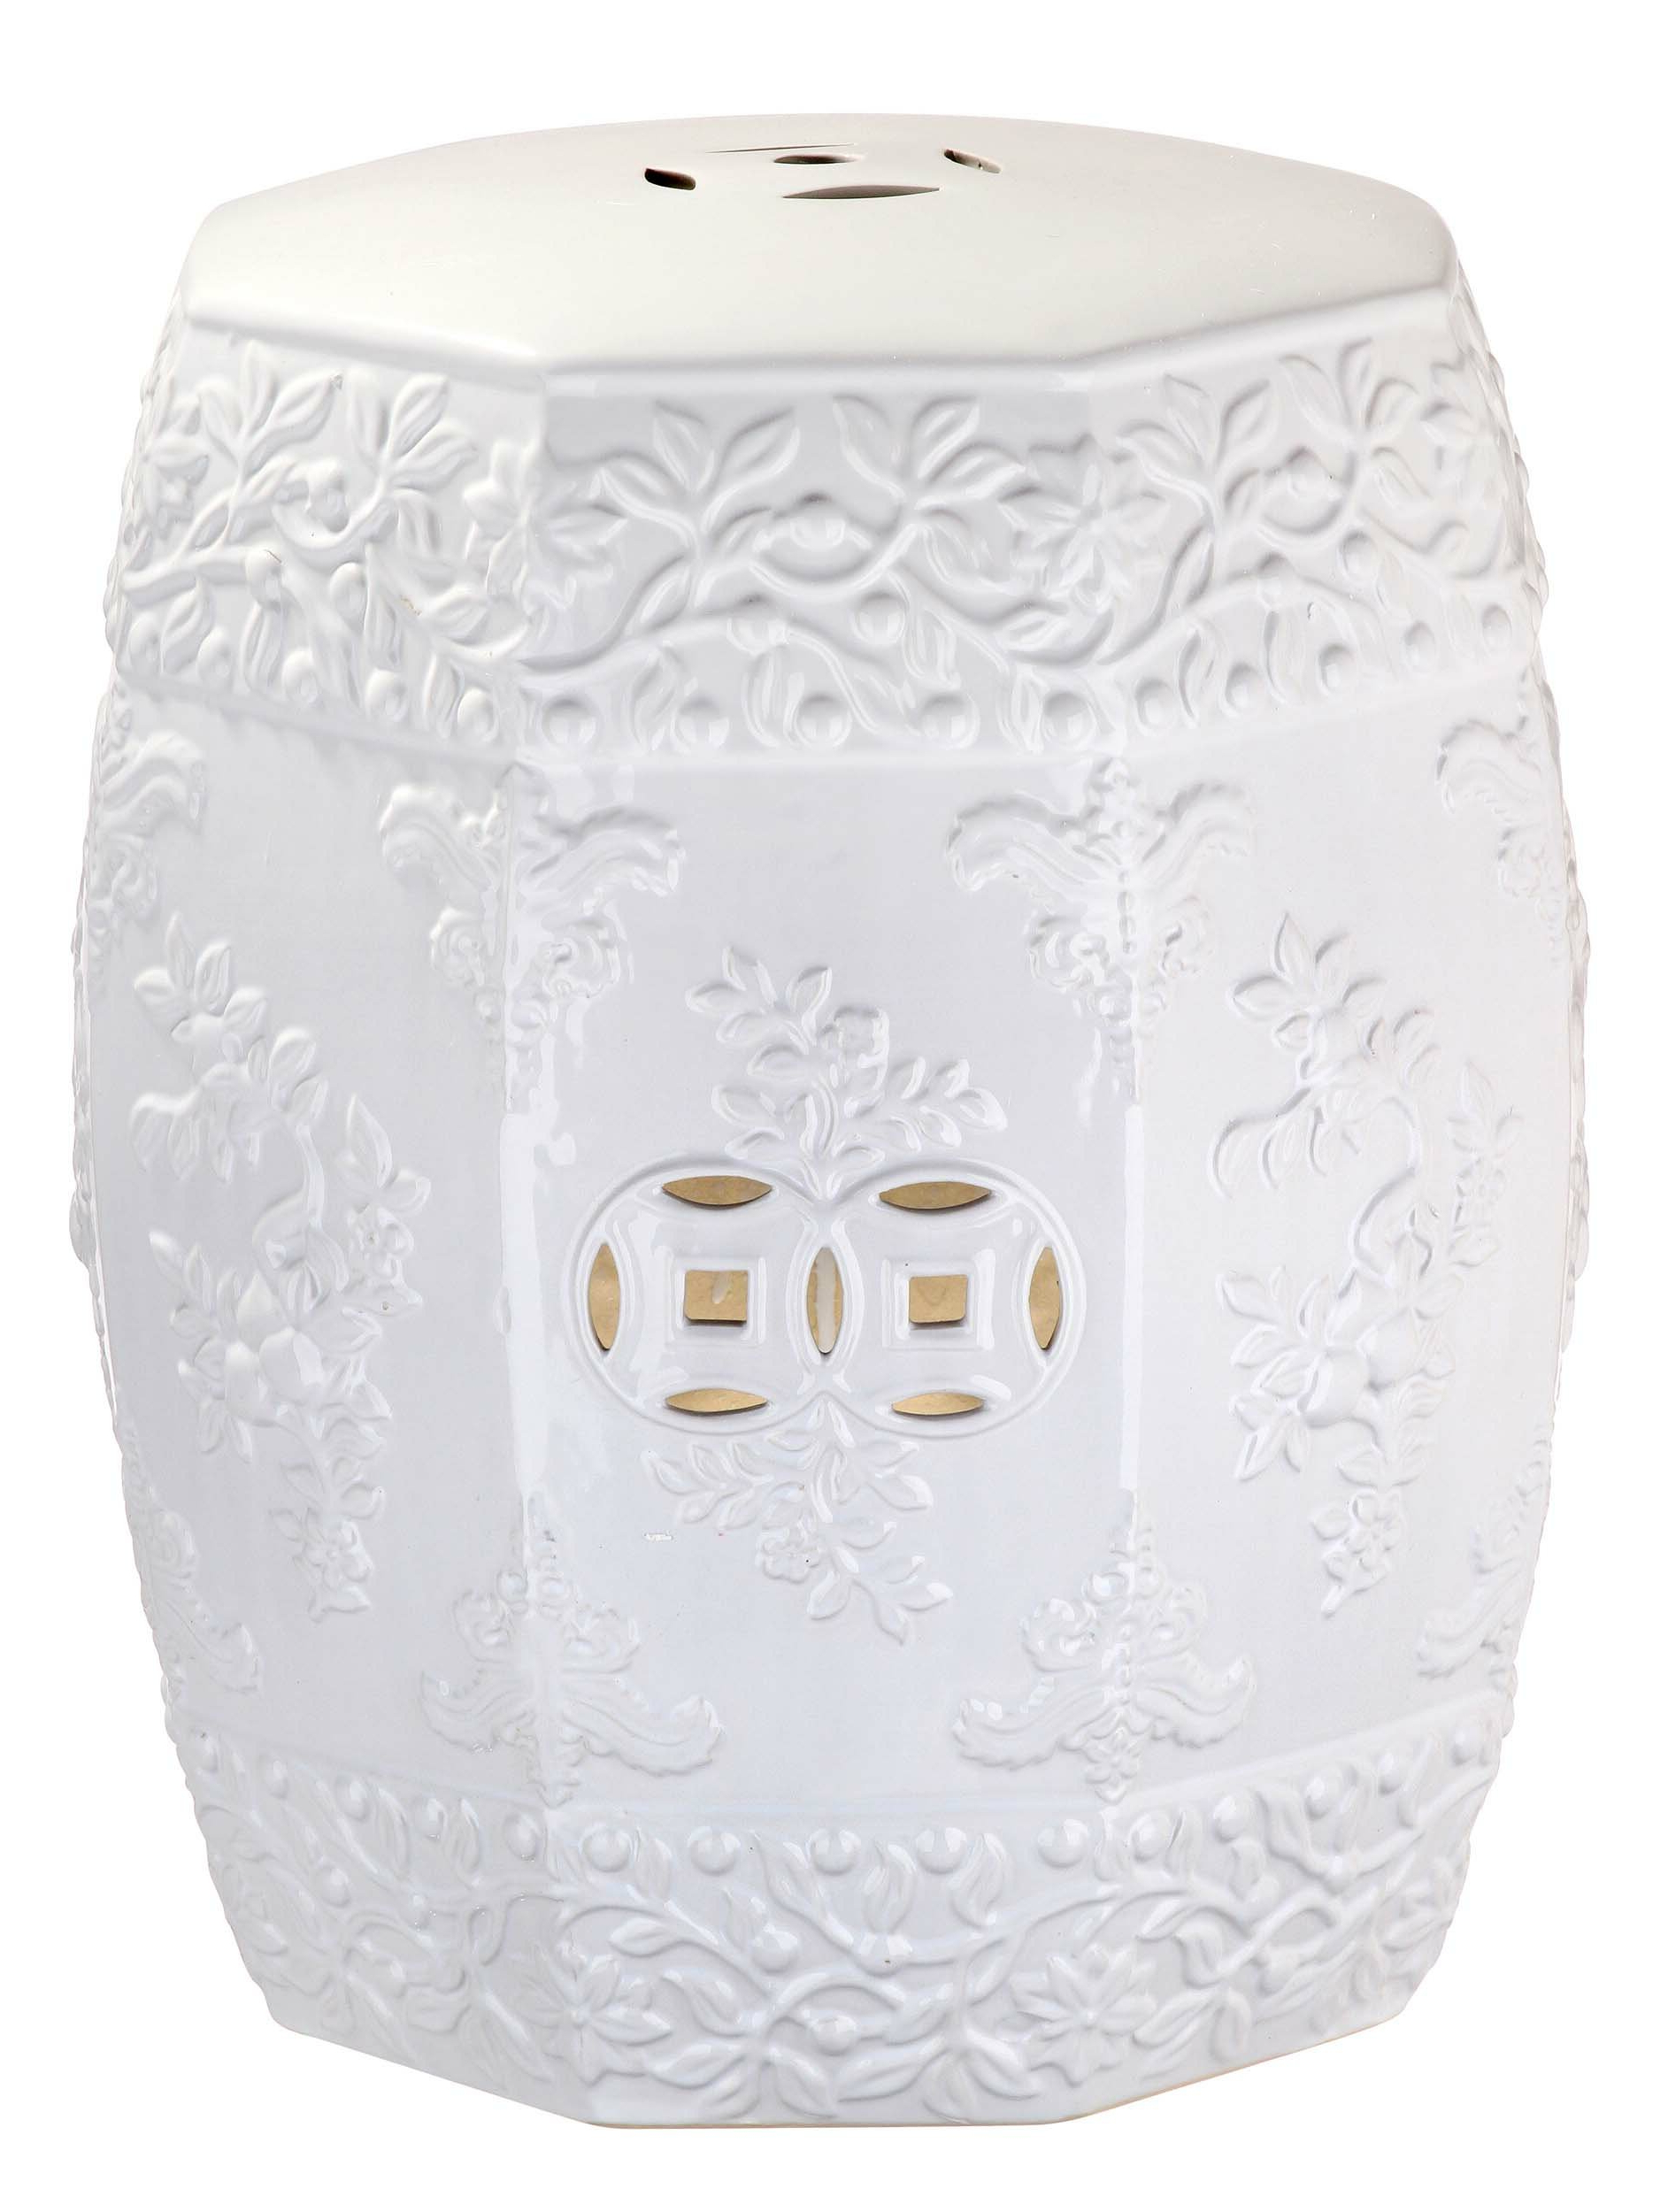 Renn Ceramic Garden Stool Inside Recent Fifi Ceramic Garden Stools (View 3 of 30)